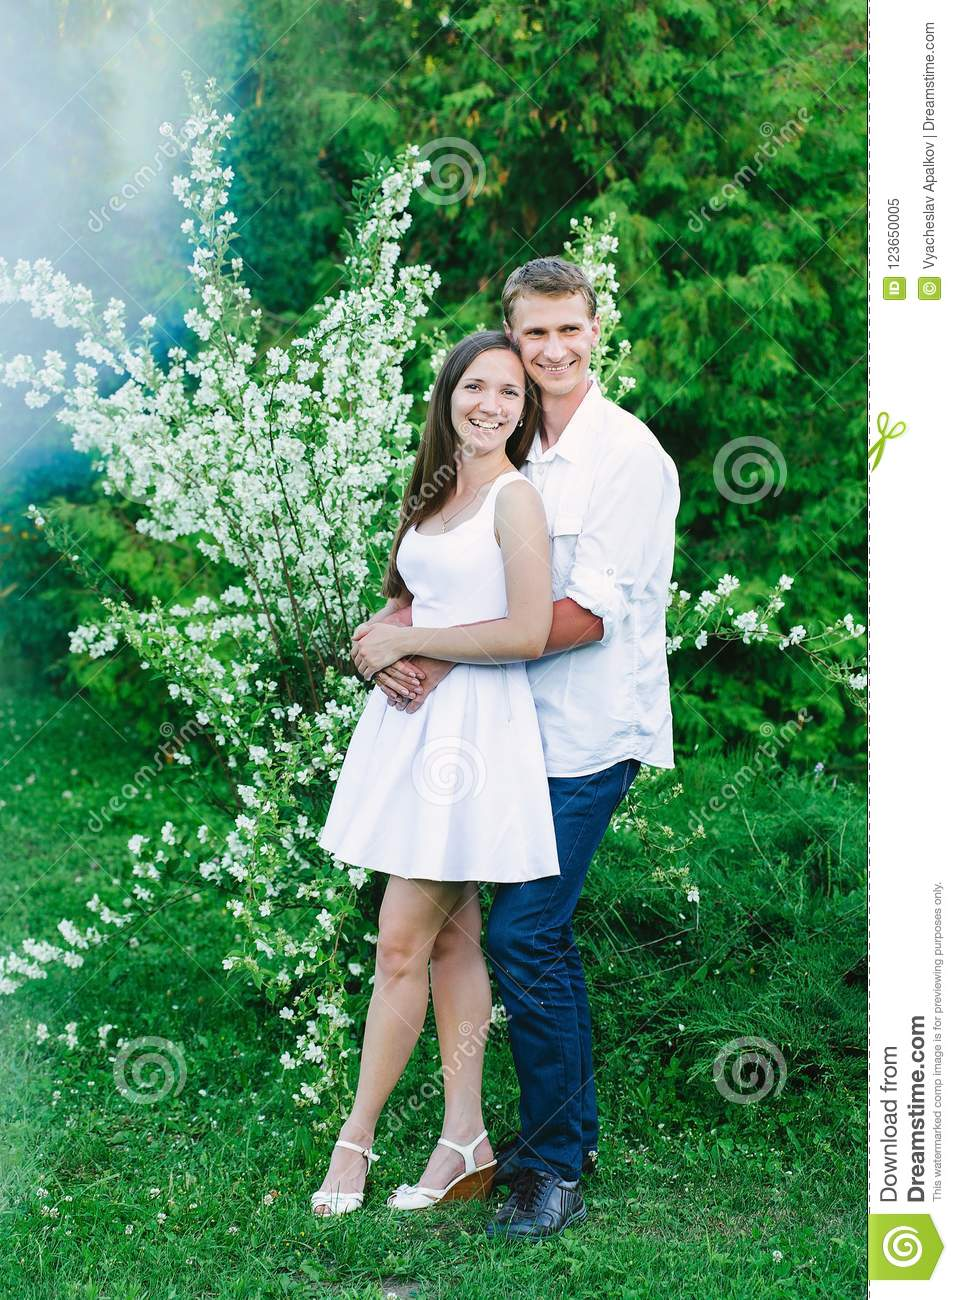 Girl standing back to her hugging man